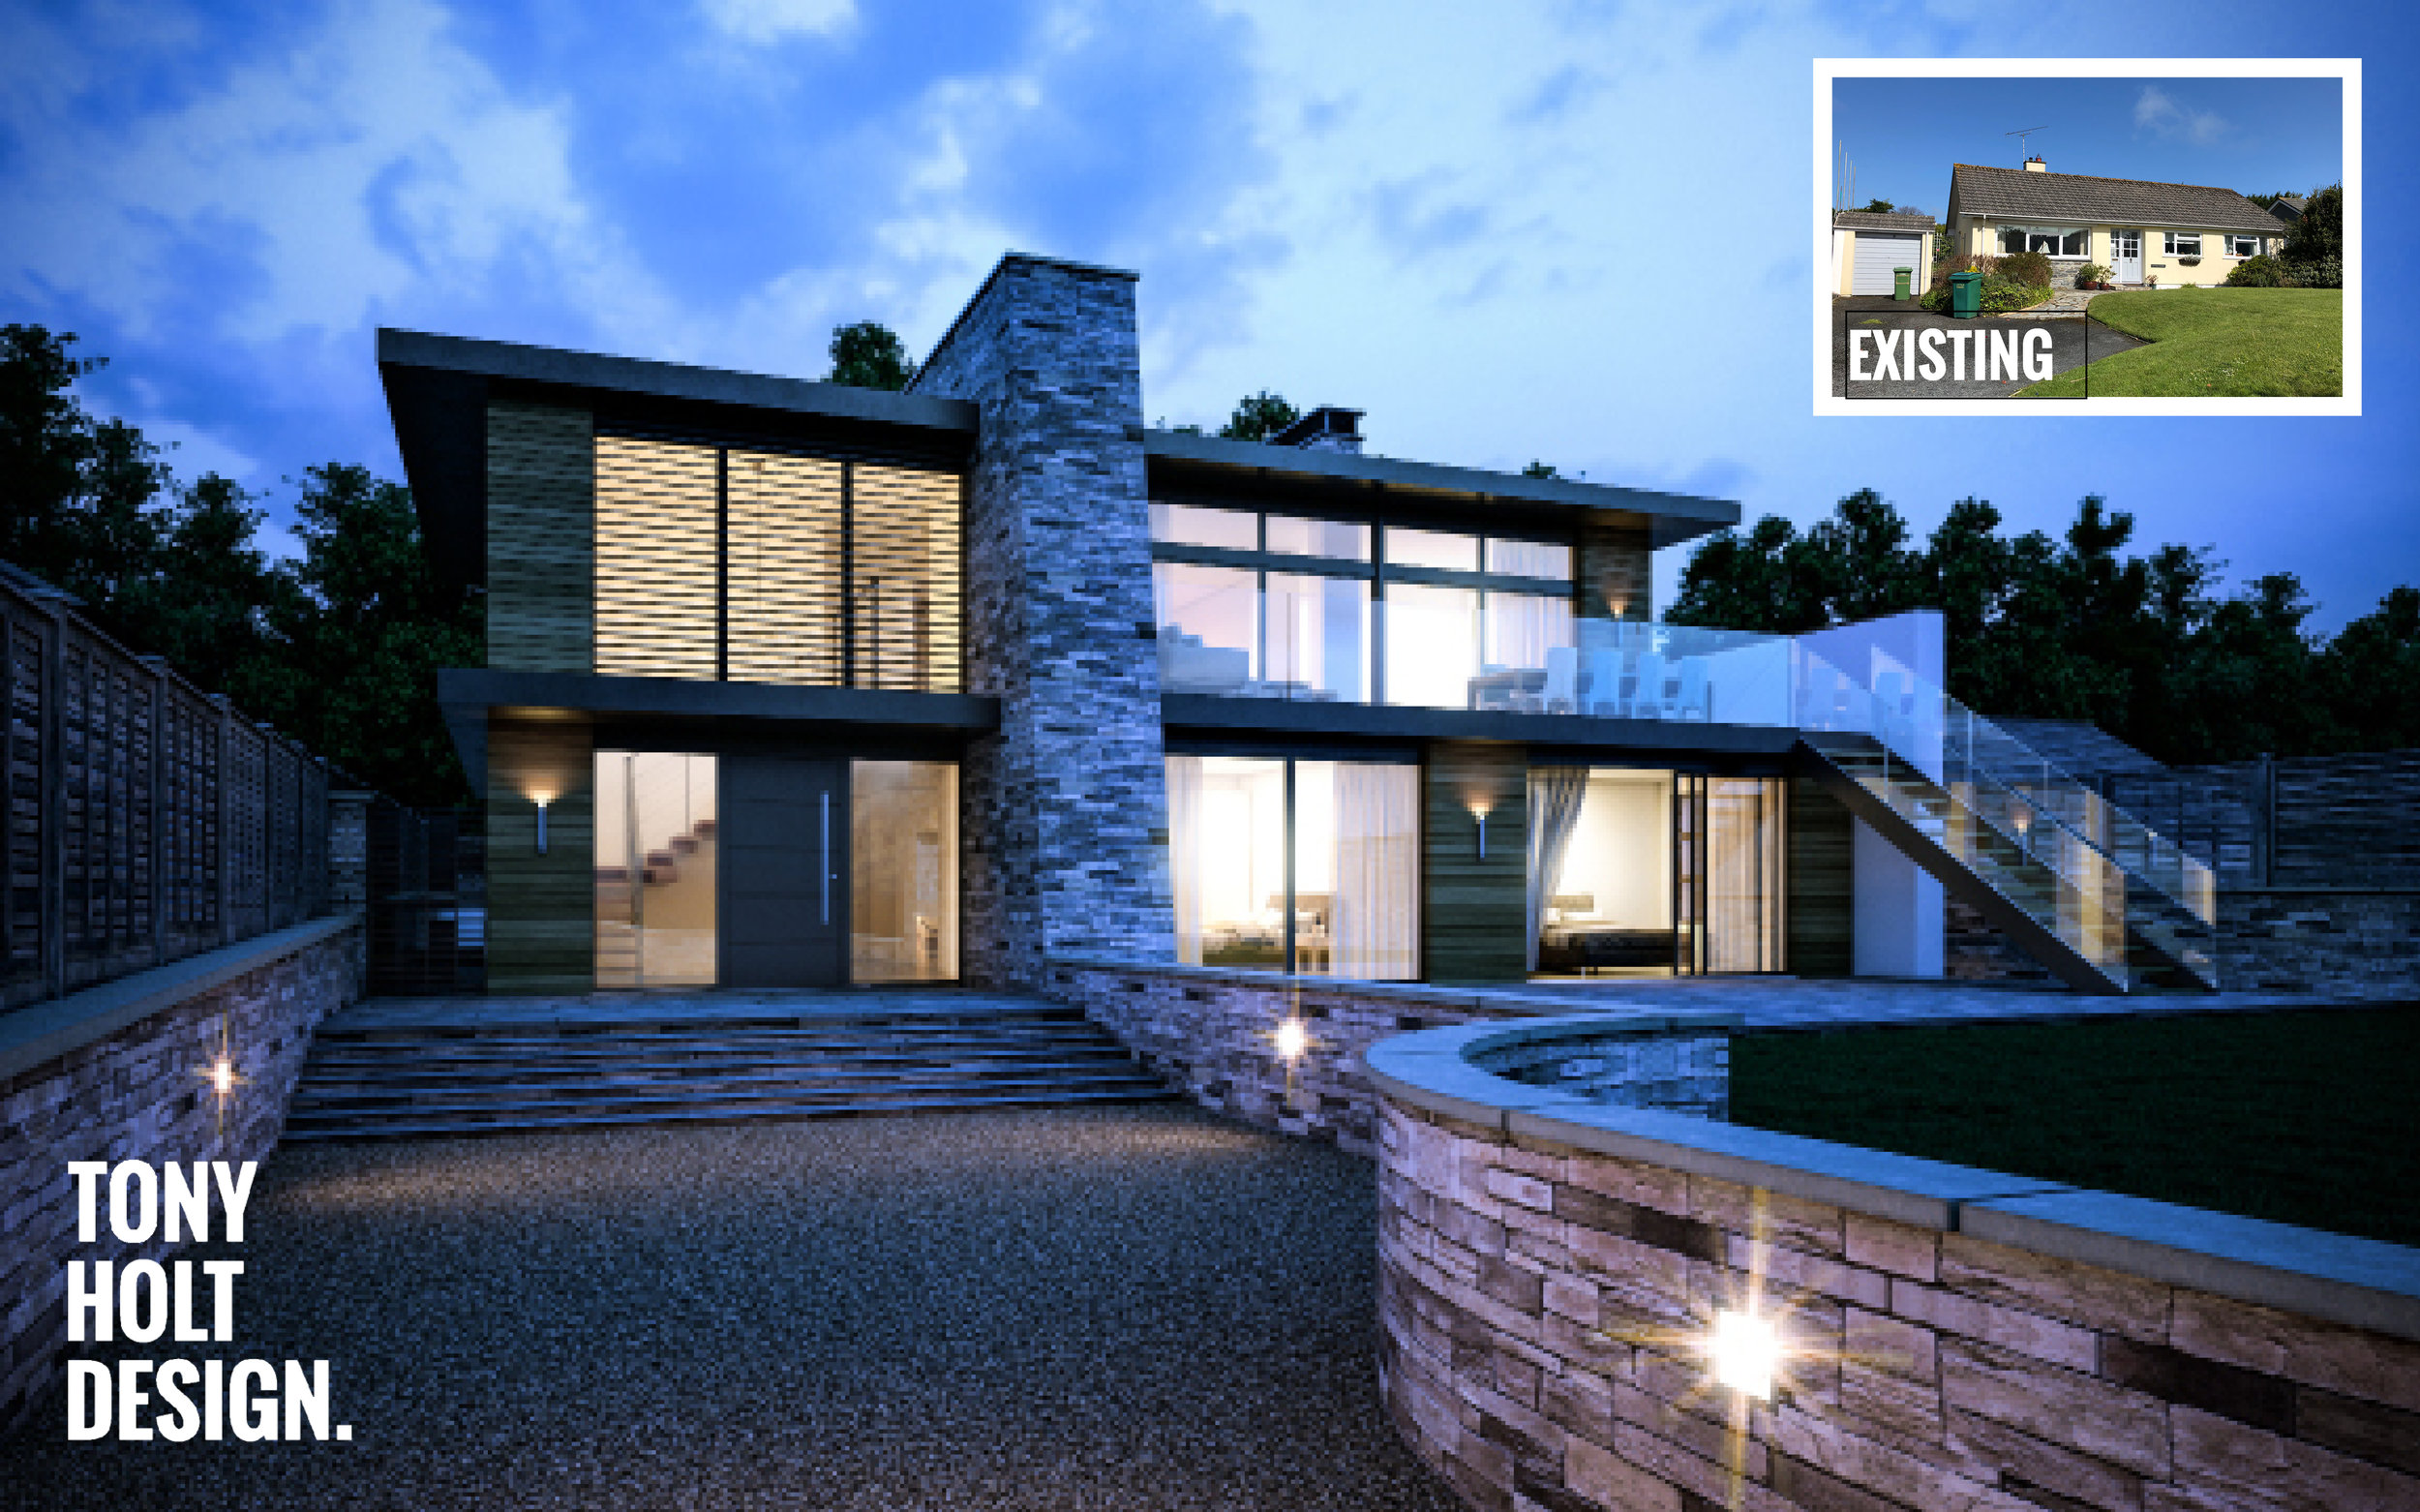 Tony Holt Design_Self Build_New Build_Little Sands 01_CGI with Existing.jpg